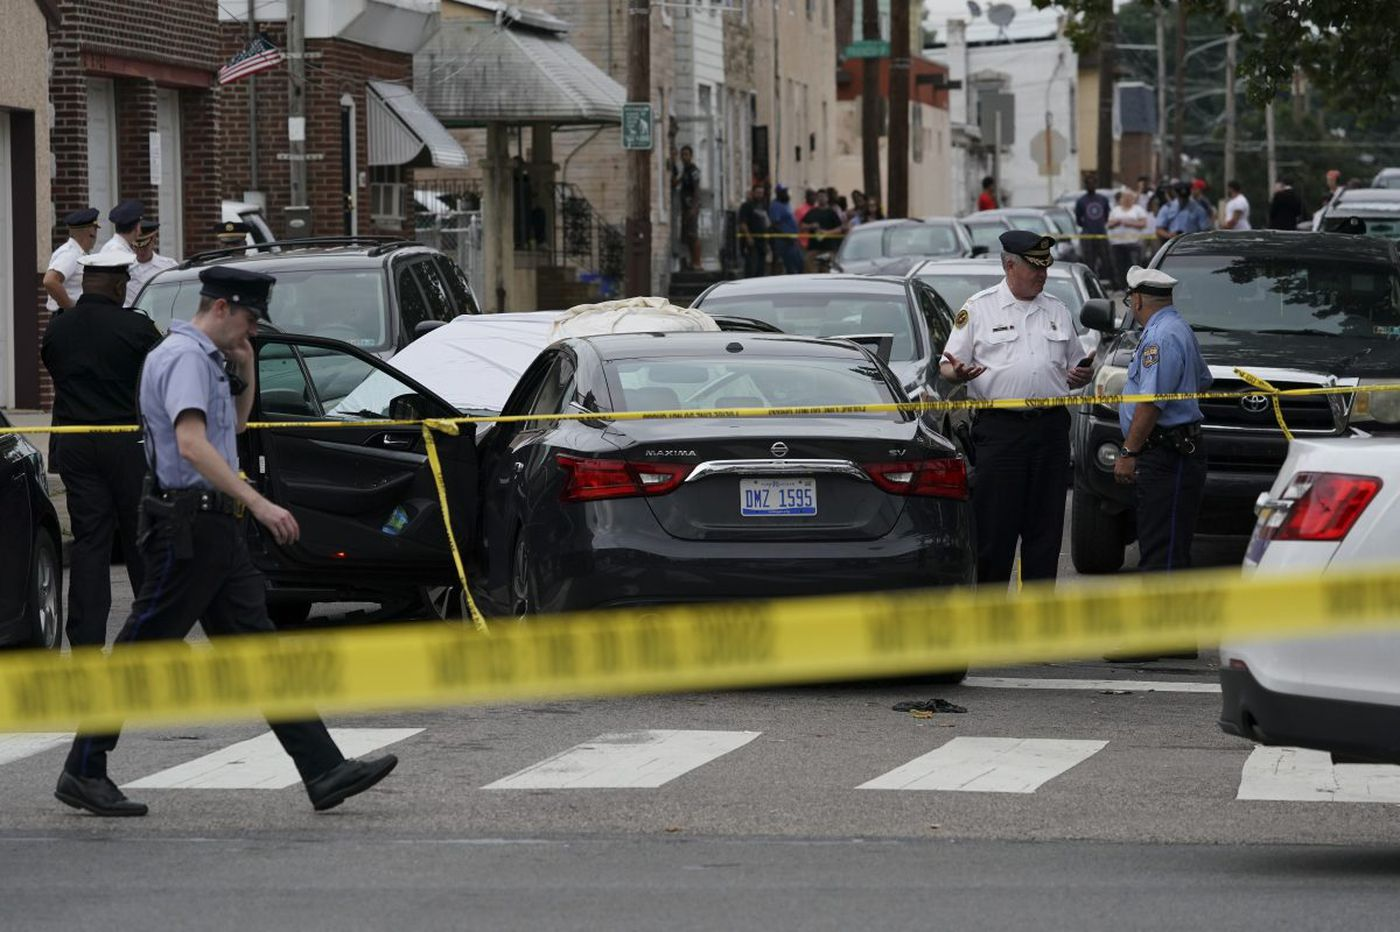 Police fatally shoot man in Tacony; 3 officers injured